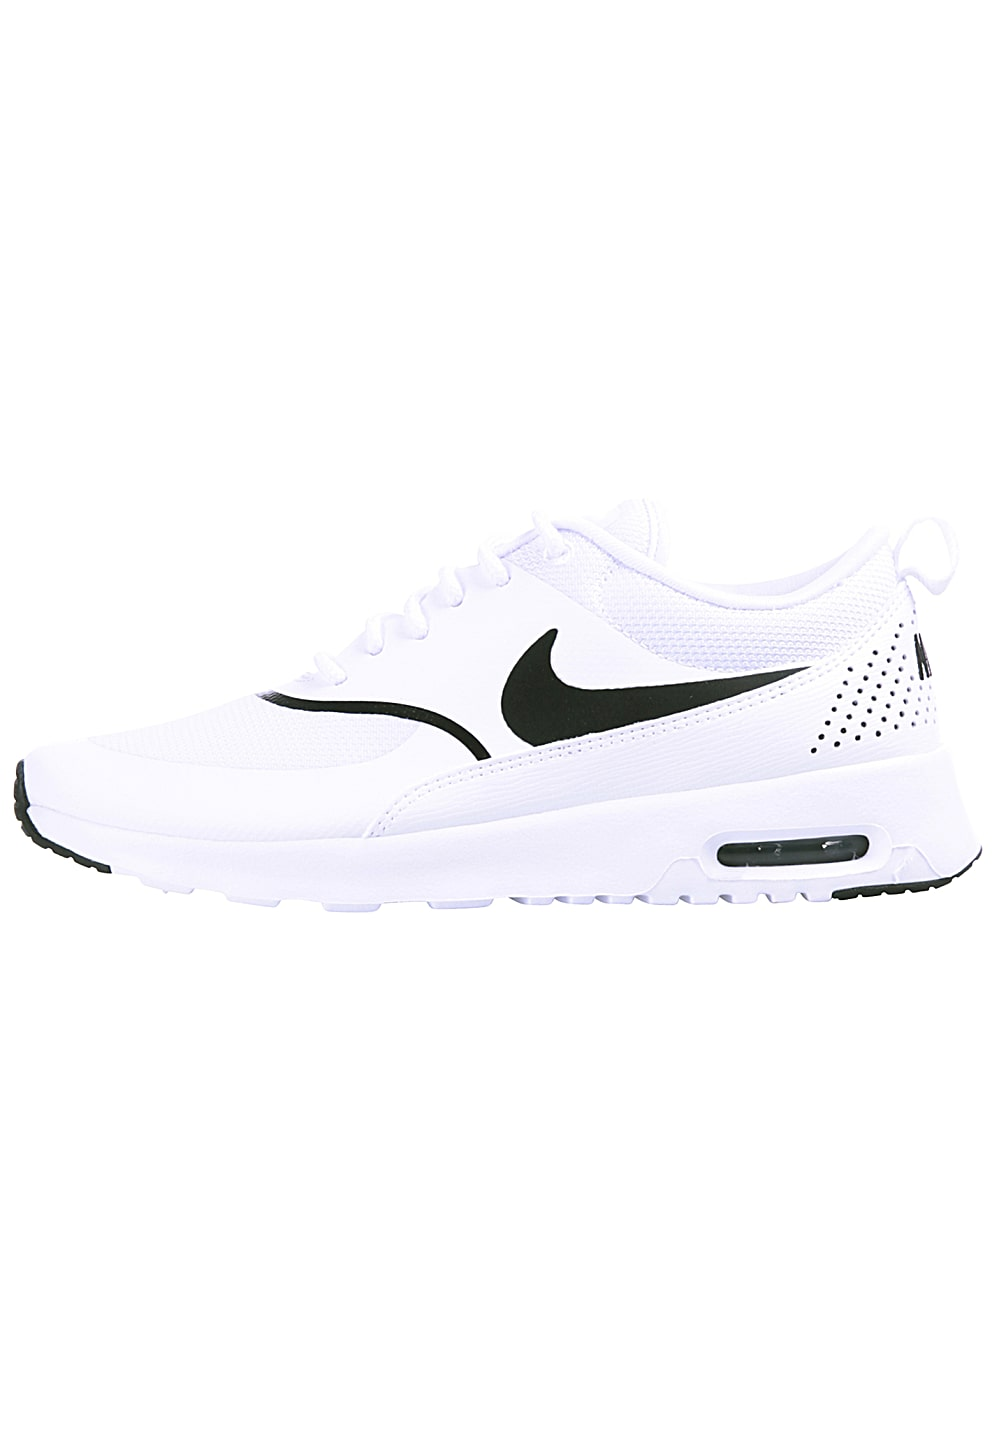 NIKE SPORTSWEAR Air Max Thea Sneakers for Women White